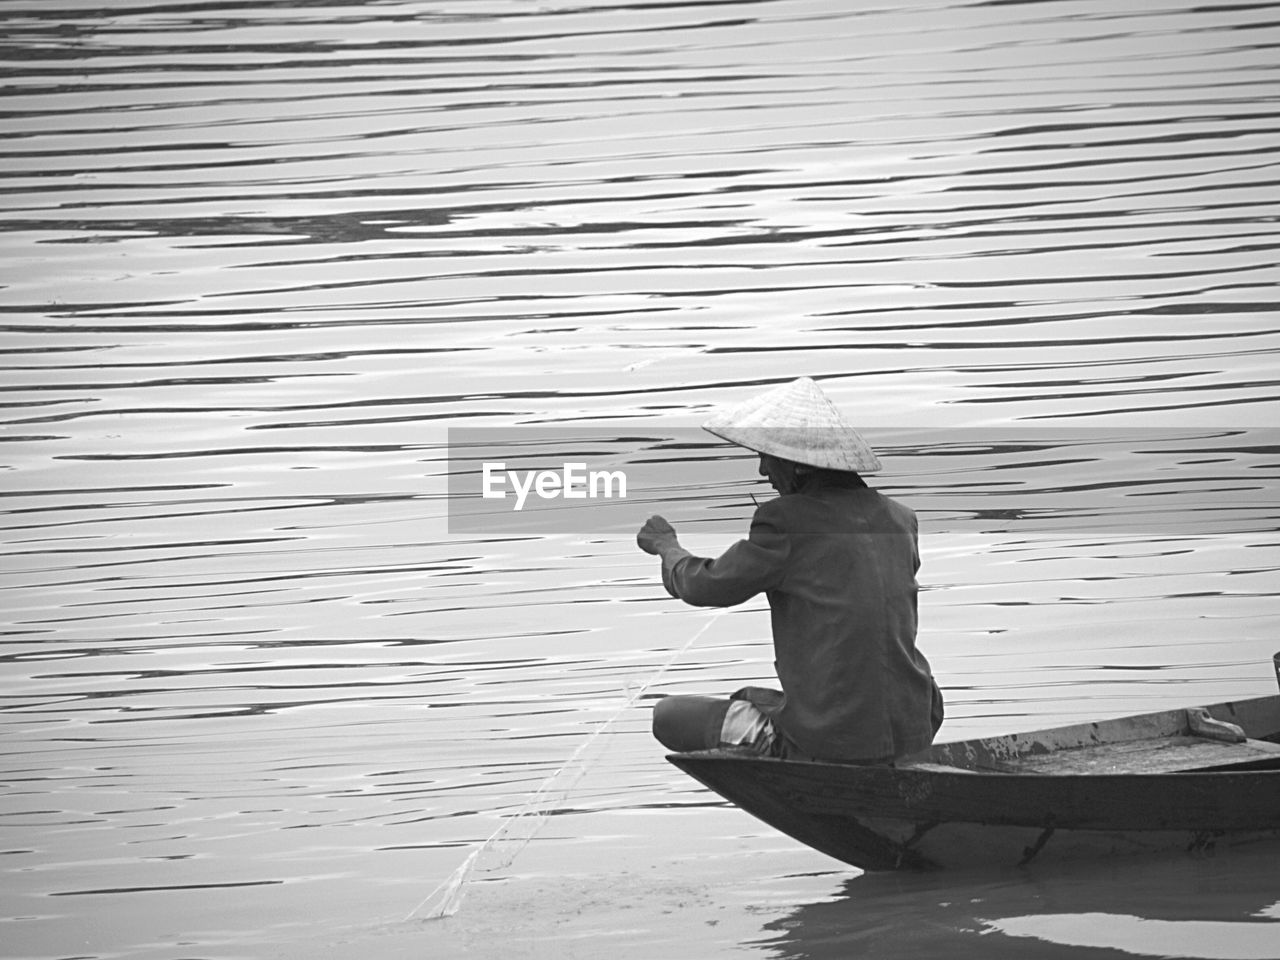 real people, water, one person, outdoors, asian style conical hat, lifestyles, men, day, standing, occupation, nature, full length, working, salt basin, fishing pole, beauty in nature, people